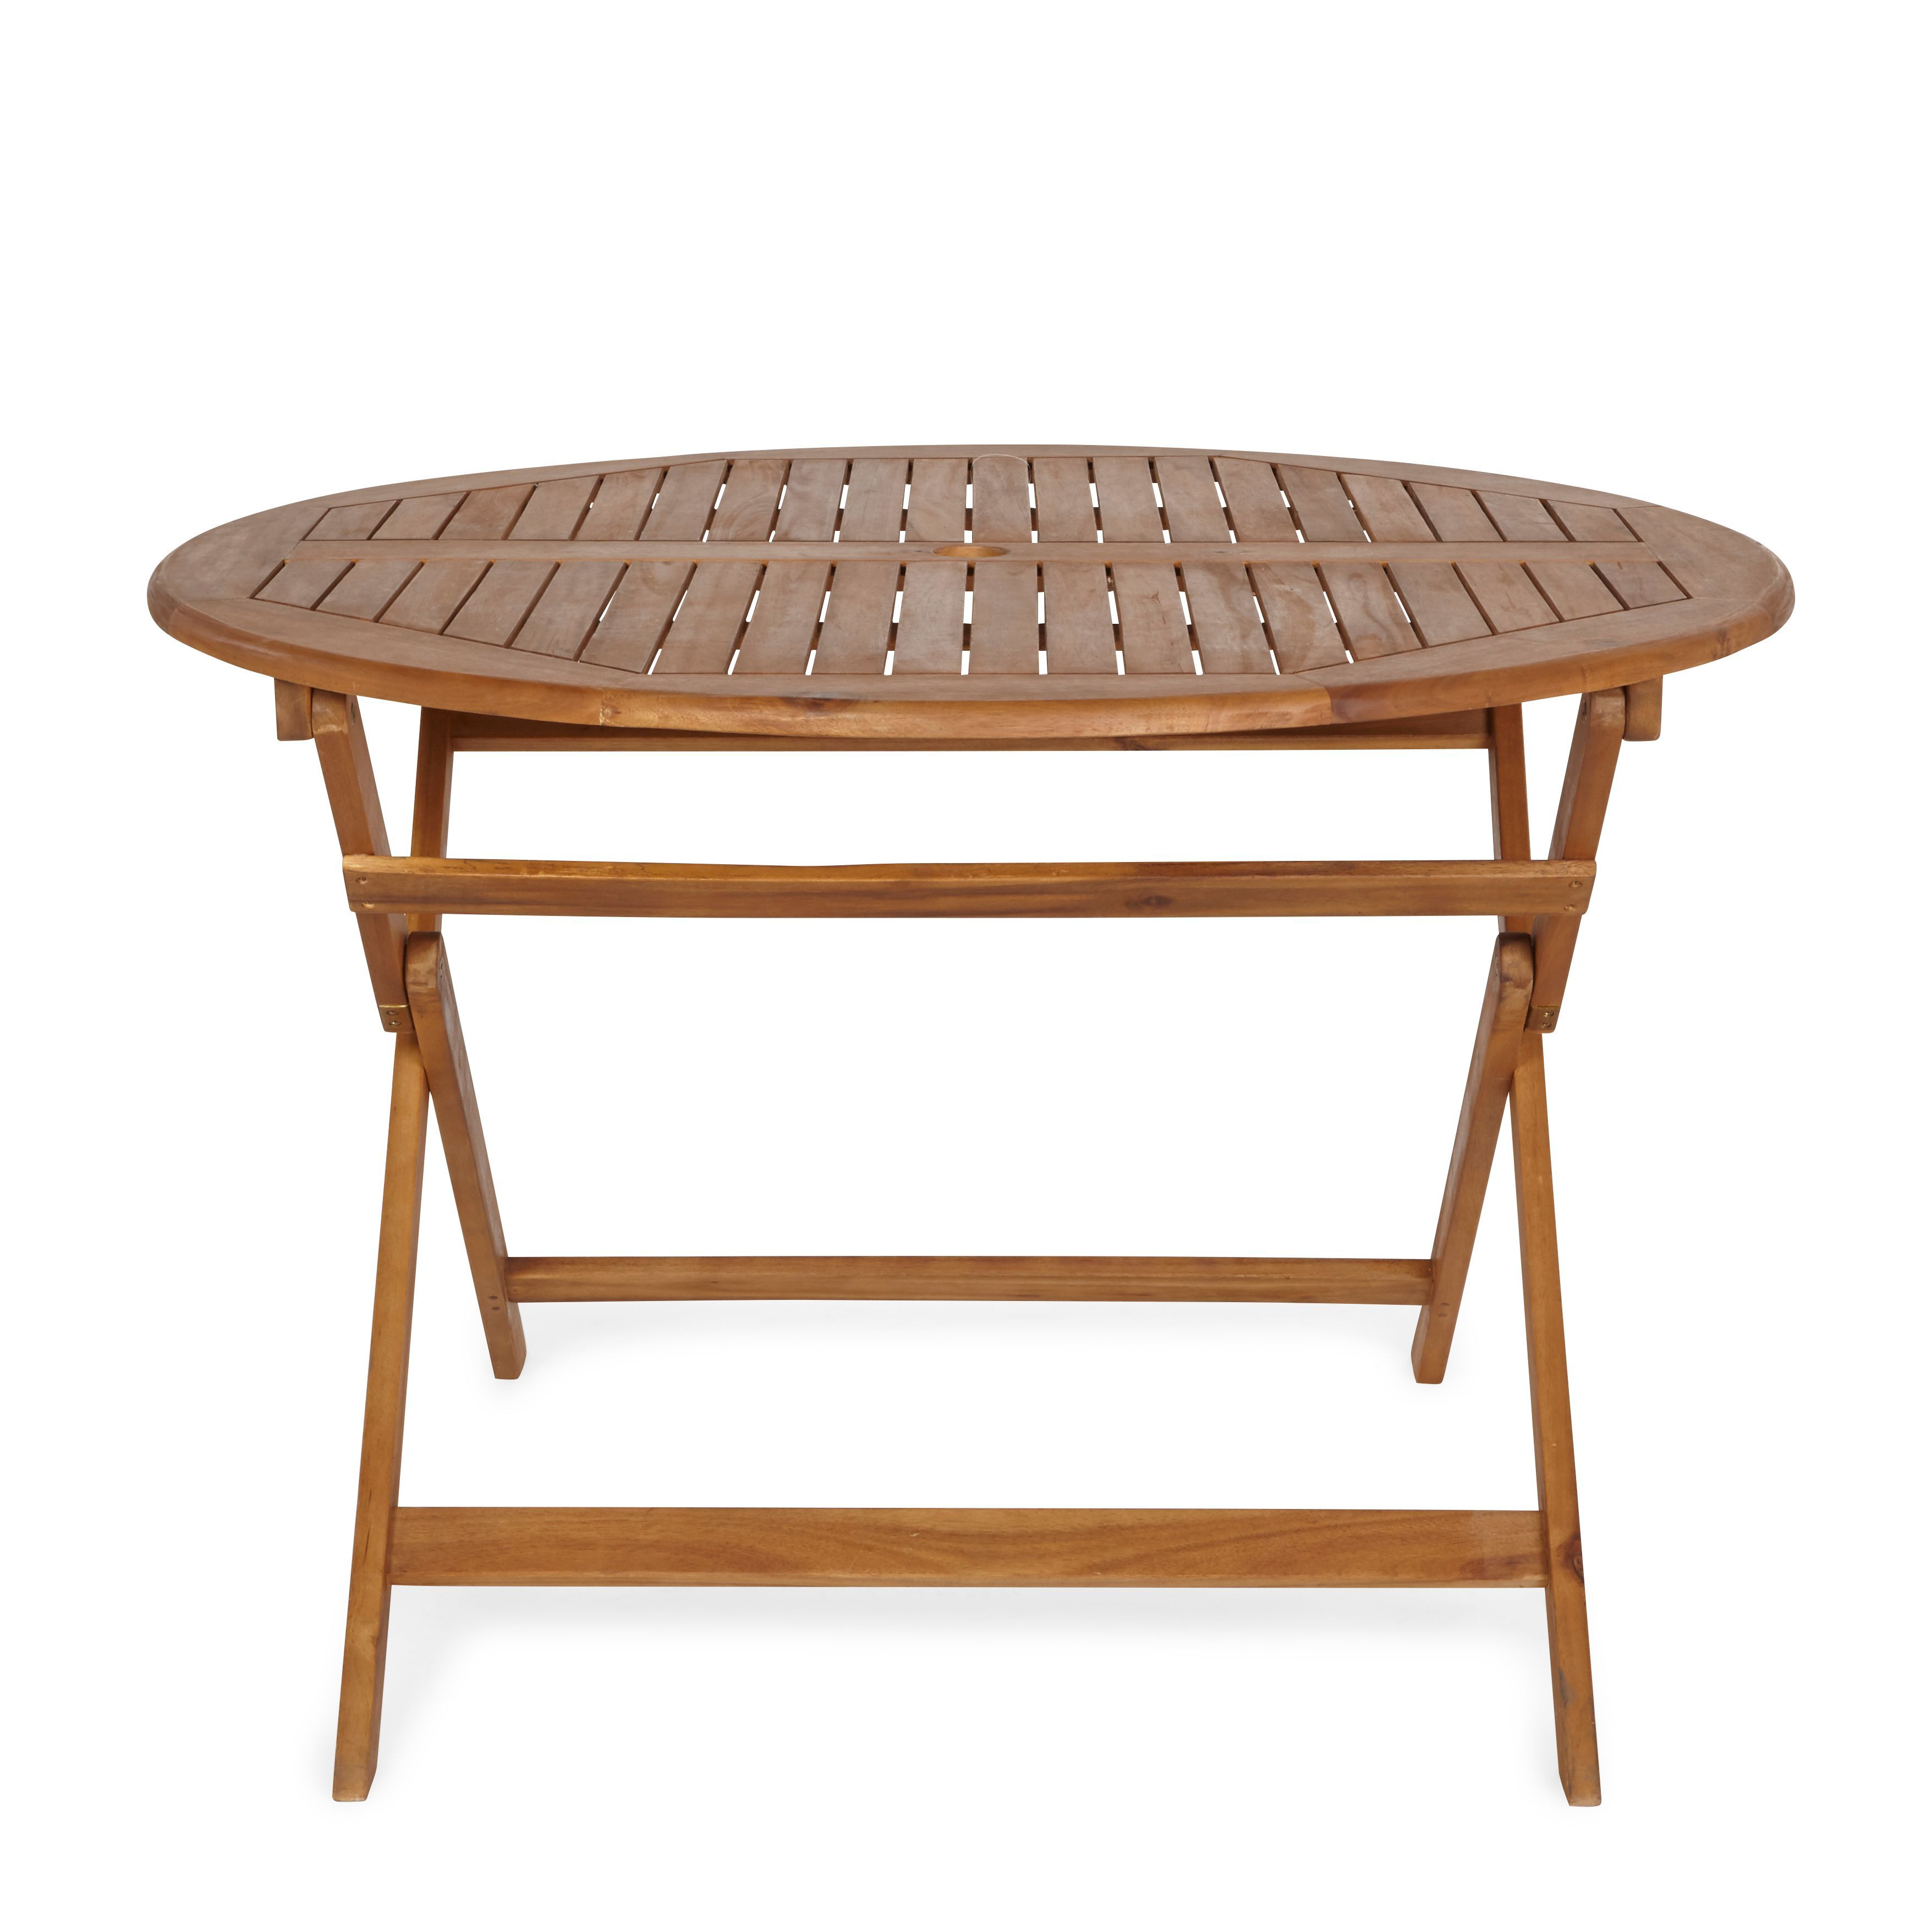 Victoria Wooden 4 Seater Dining Table | Gardens